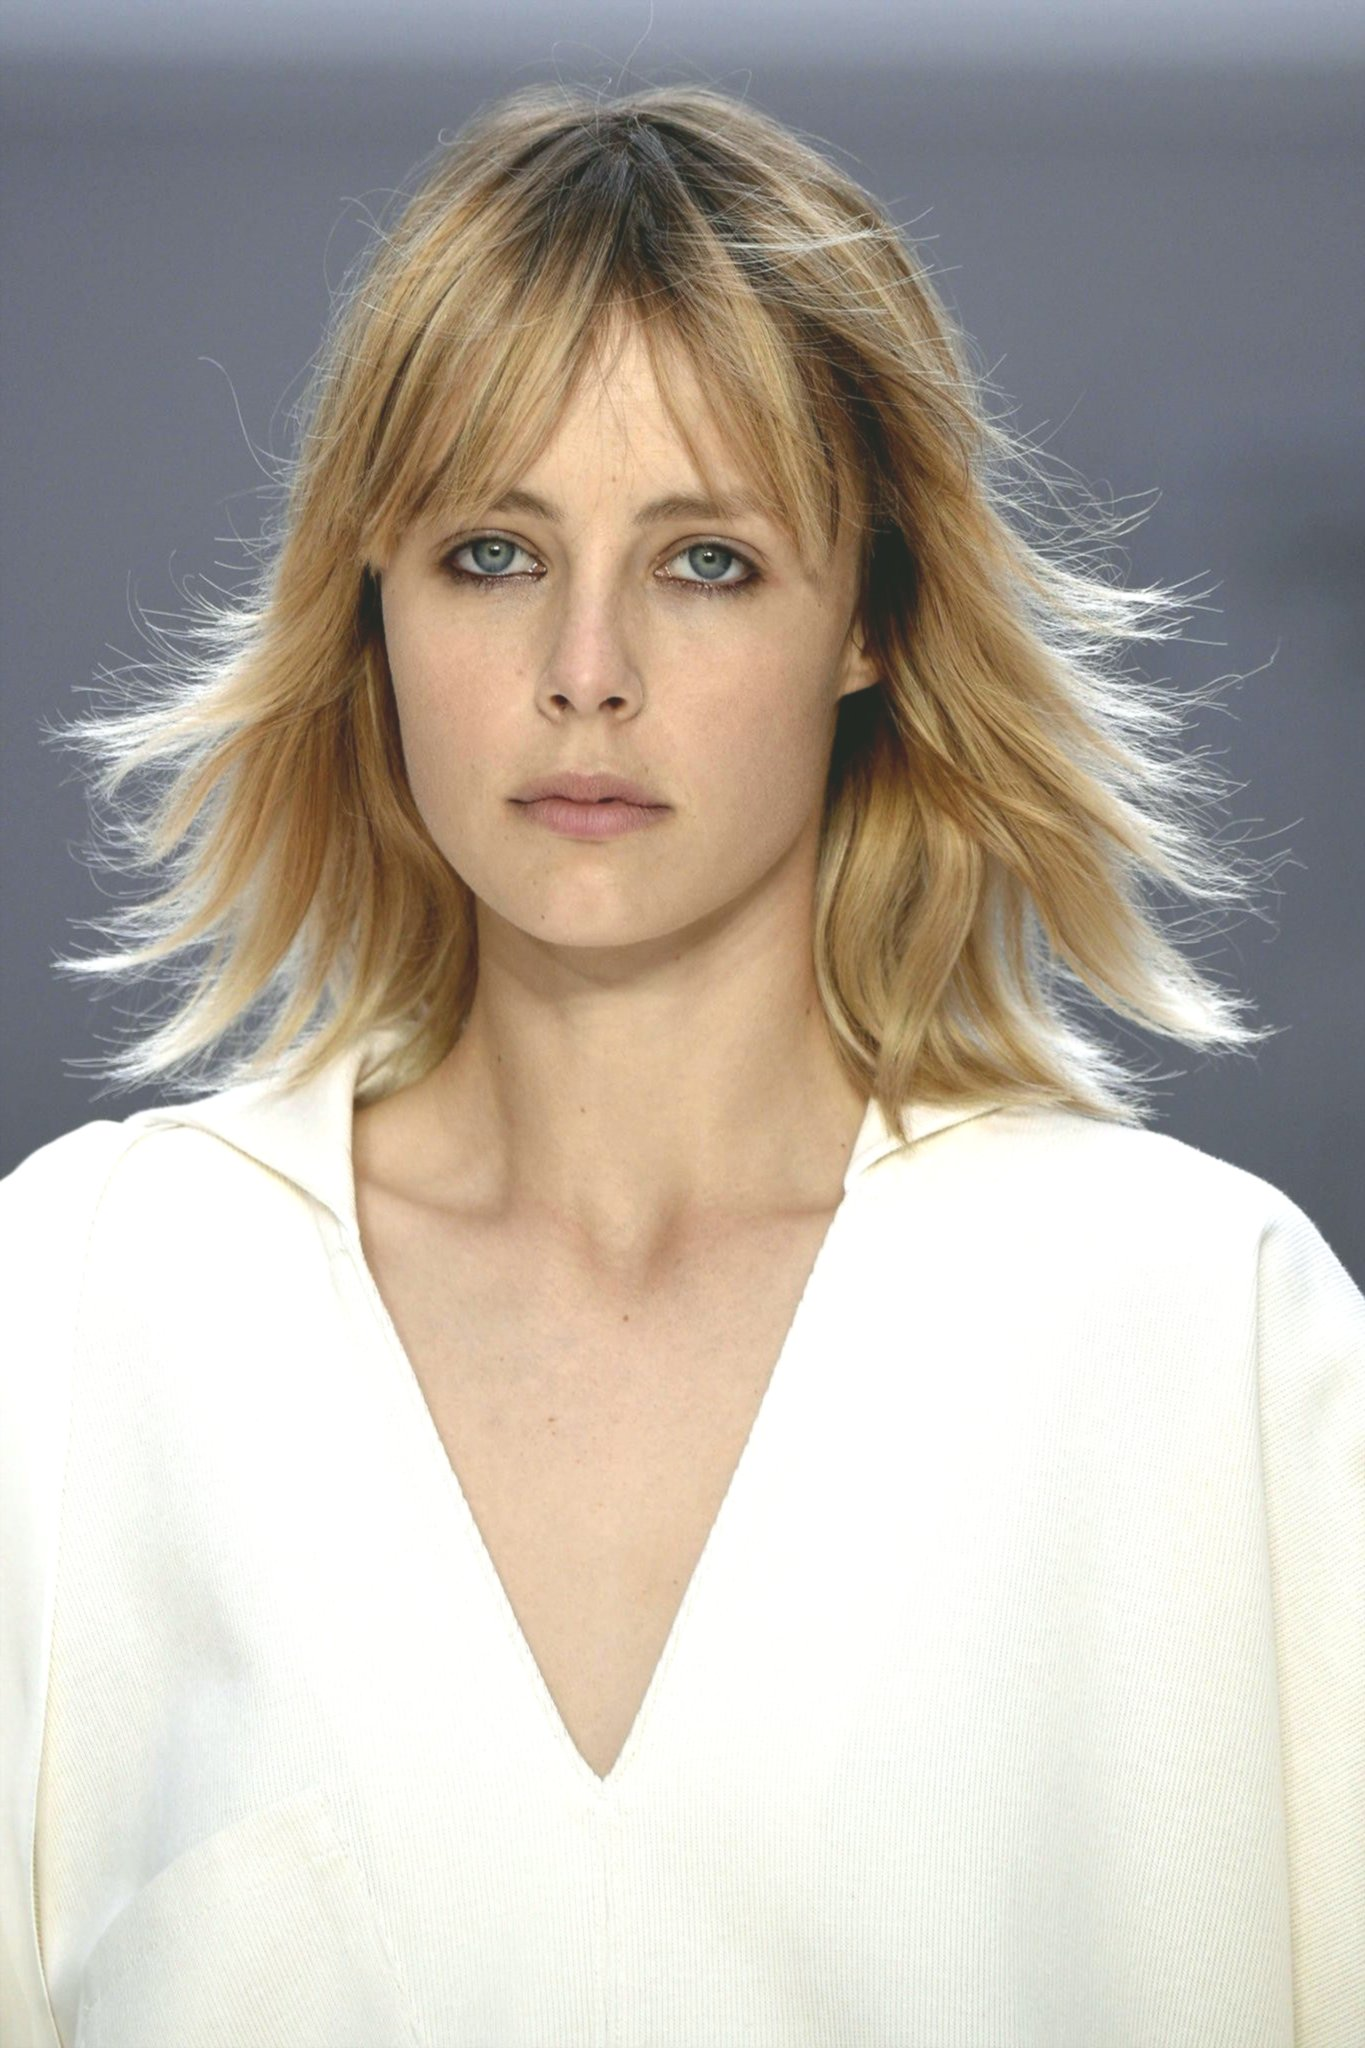 Lovely Haircut With Transition Plan - Sensational Haircut With Transition Picture